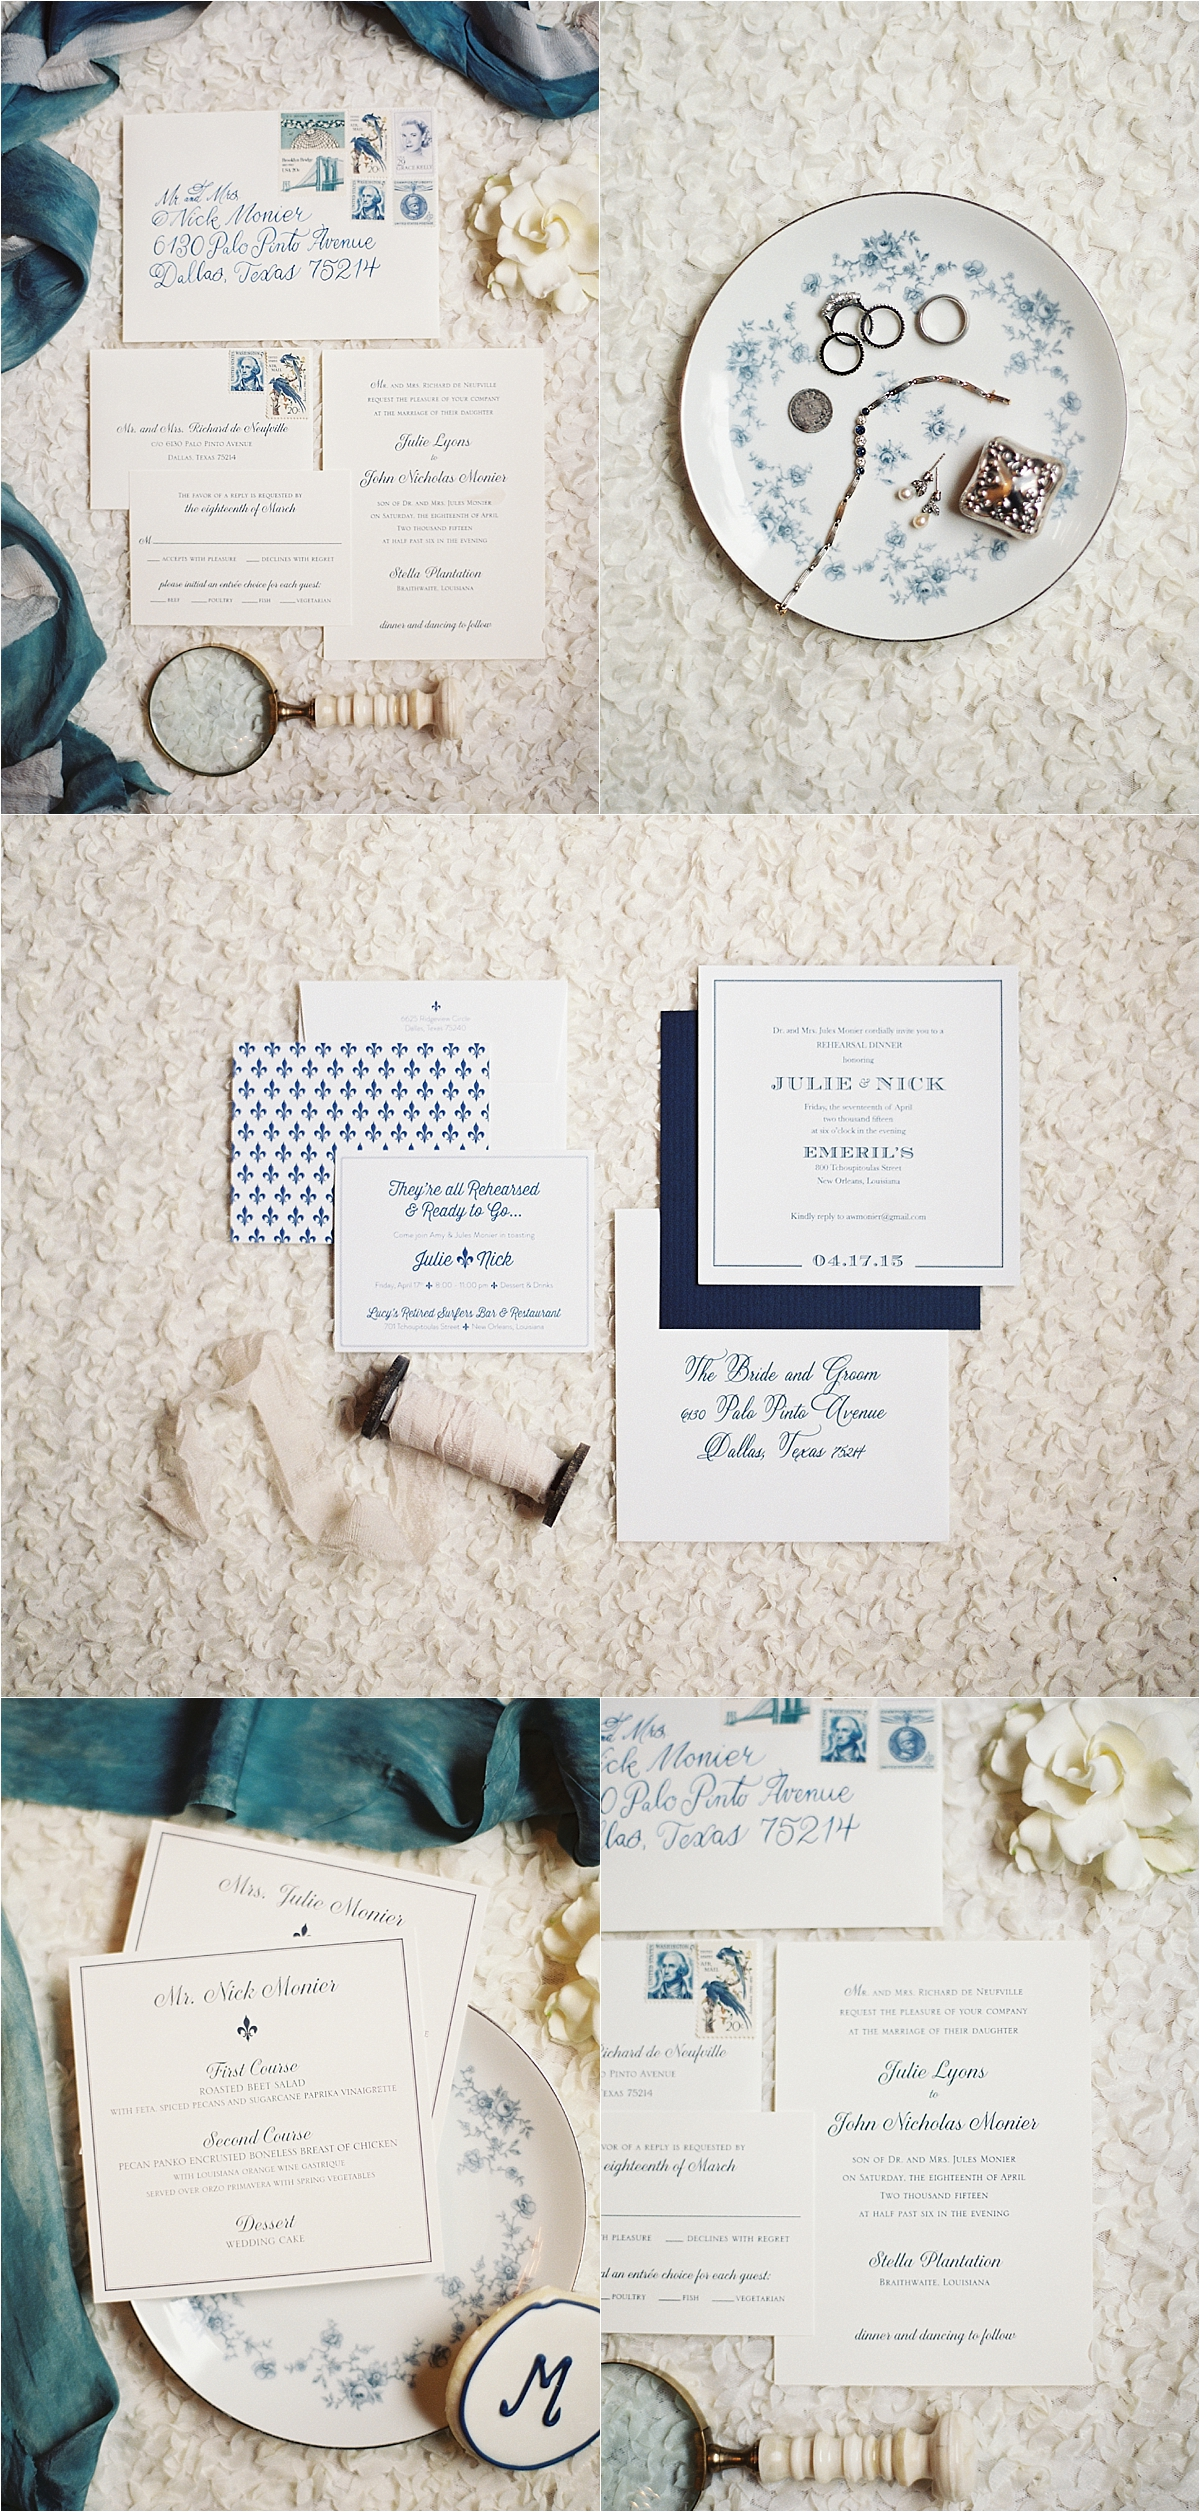 light blue, ivory and dark blue wedding invitation suite, wedding rings and jewelry on a white and blue china dish